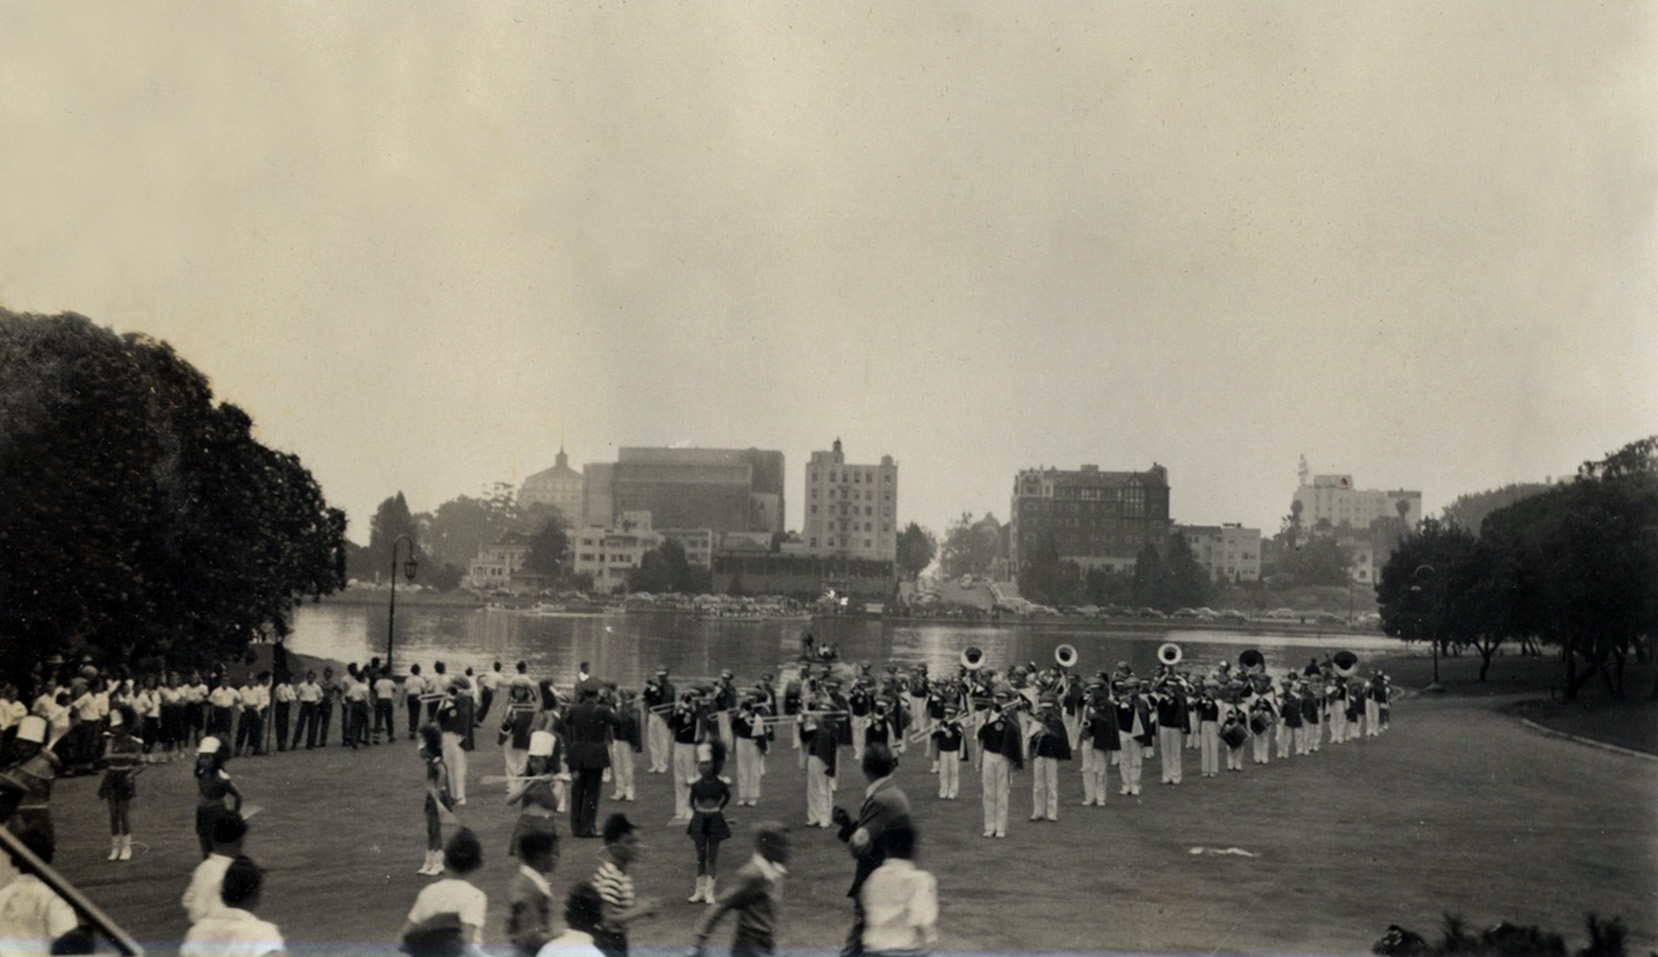 Youth marching band performs in bandstand park area of Lakeside Park, Lake Merritt, circa 1948